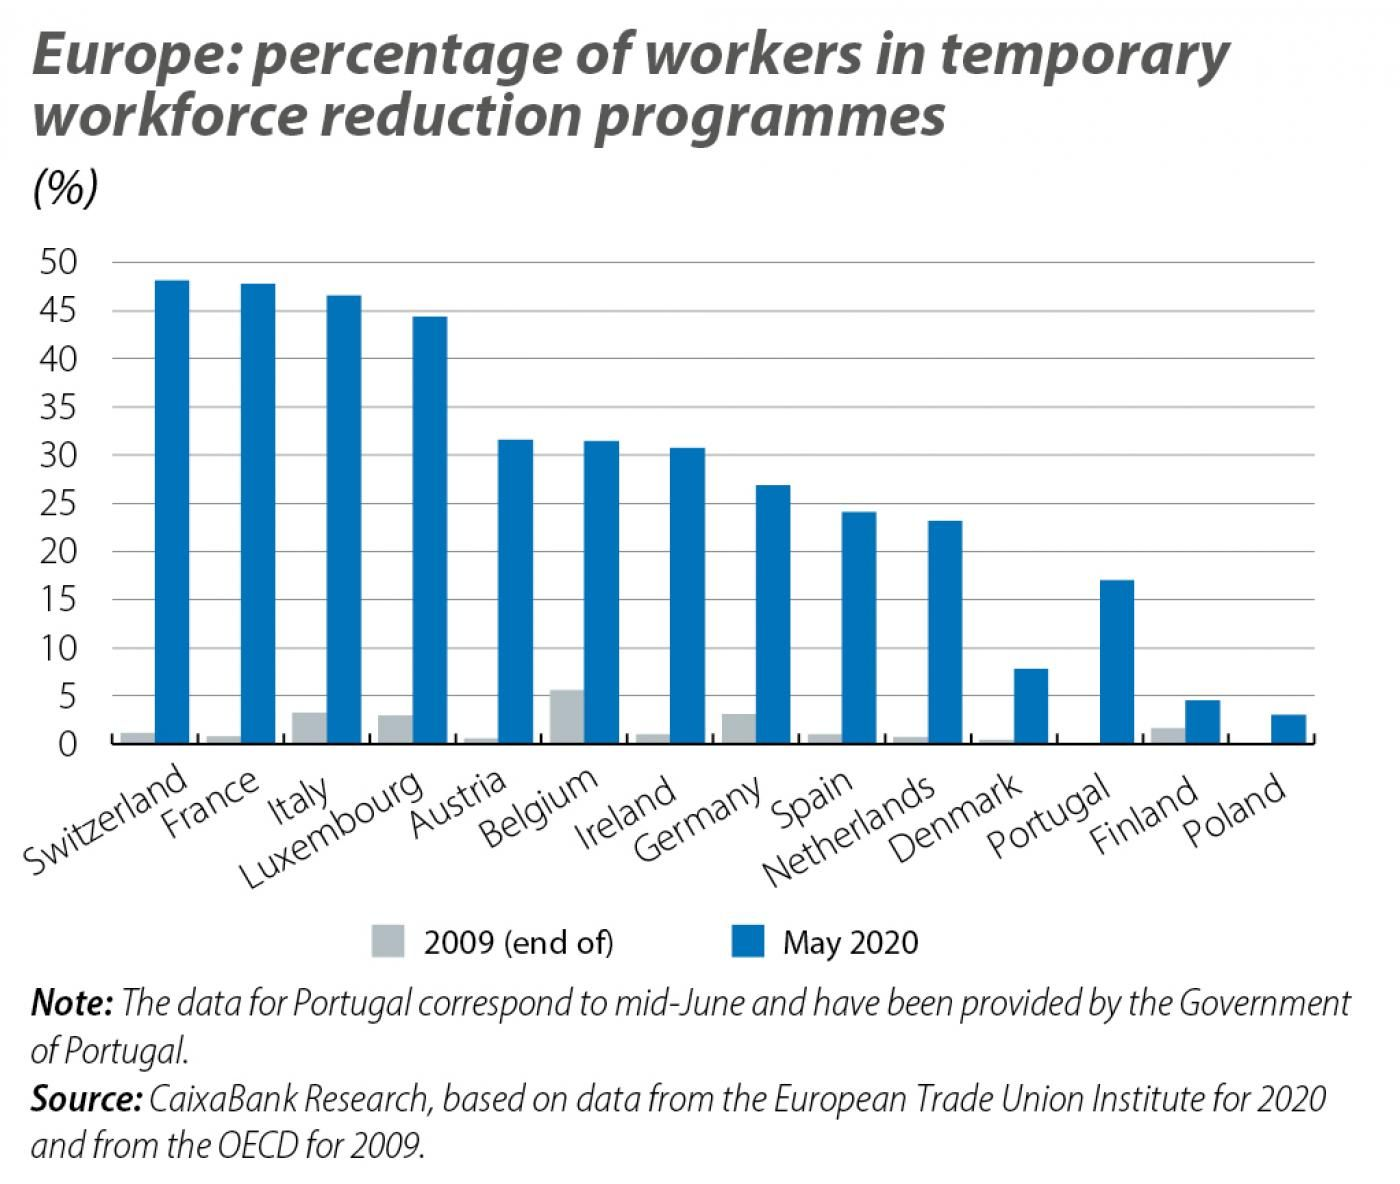 Europe: percentage of workers in temporary workforce reduction programmes